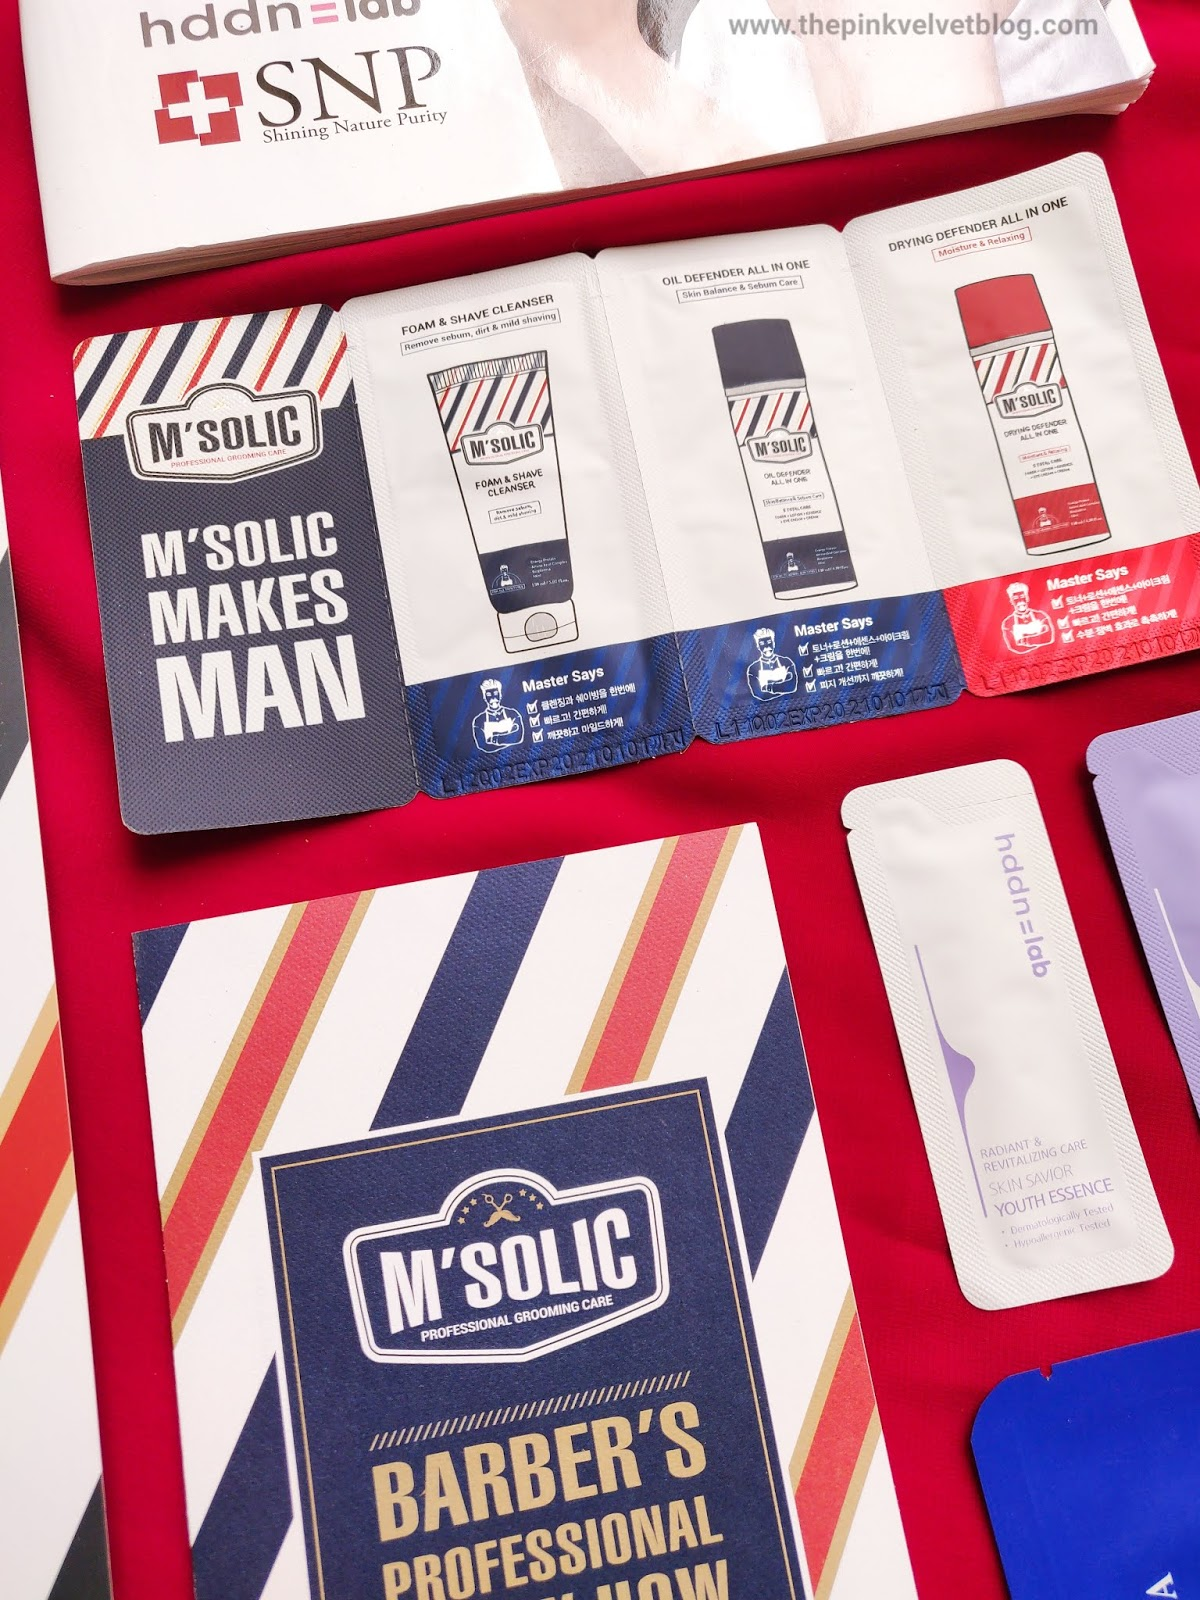 SNP Cosmetics (Korean Skincare Brand) M'Solic Men's Range